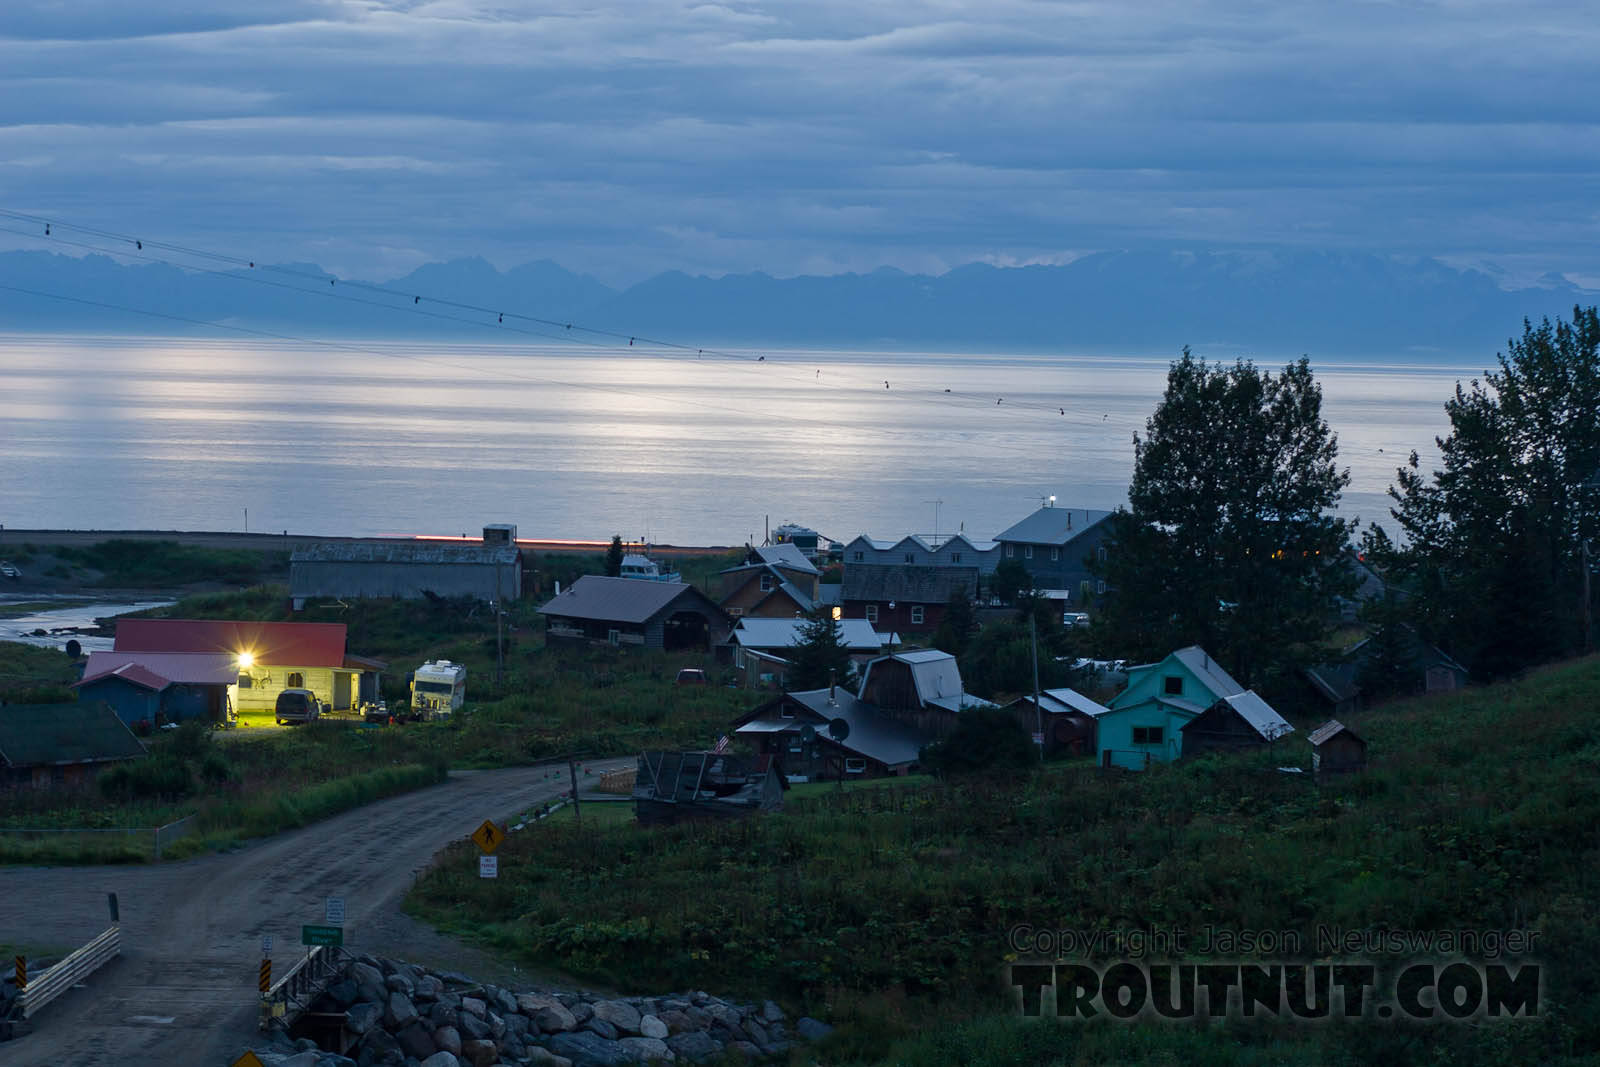 After finishing the Kenai float, I drove town to Homer.  Along the way was this view of the little fishing village of Ninilchik on Cook Inlet. From Ninilchik in Alaska.